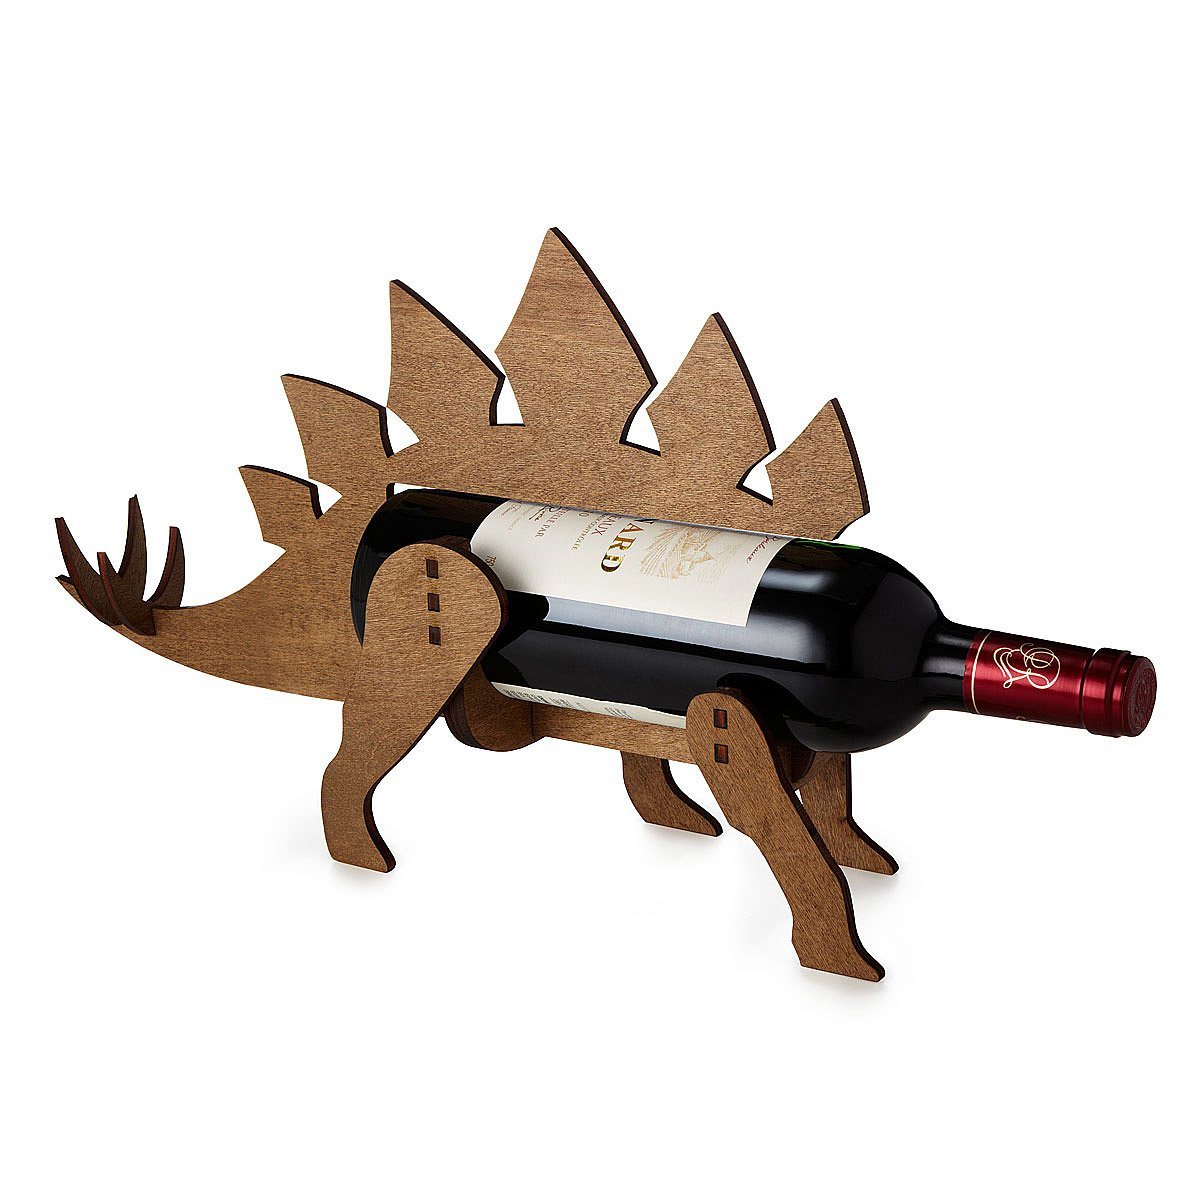 wineosaur wine bottle holder 1 thumbnail